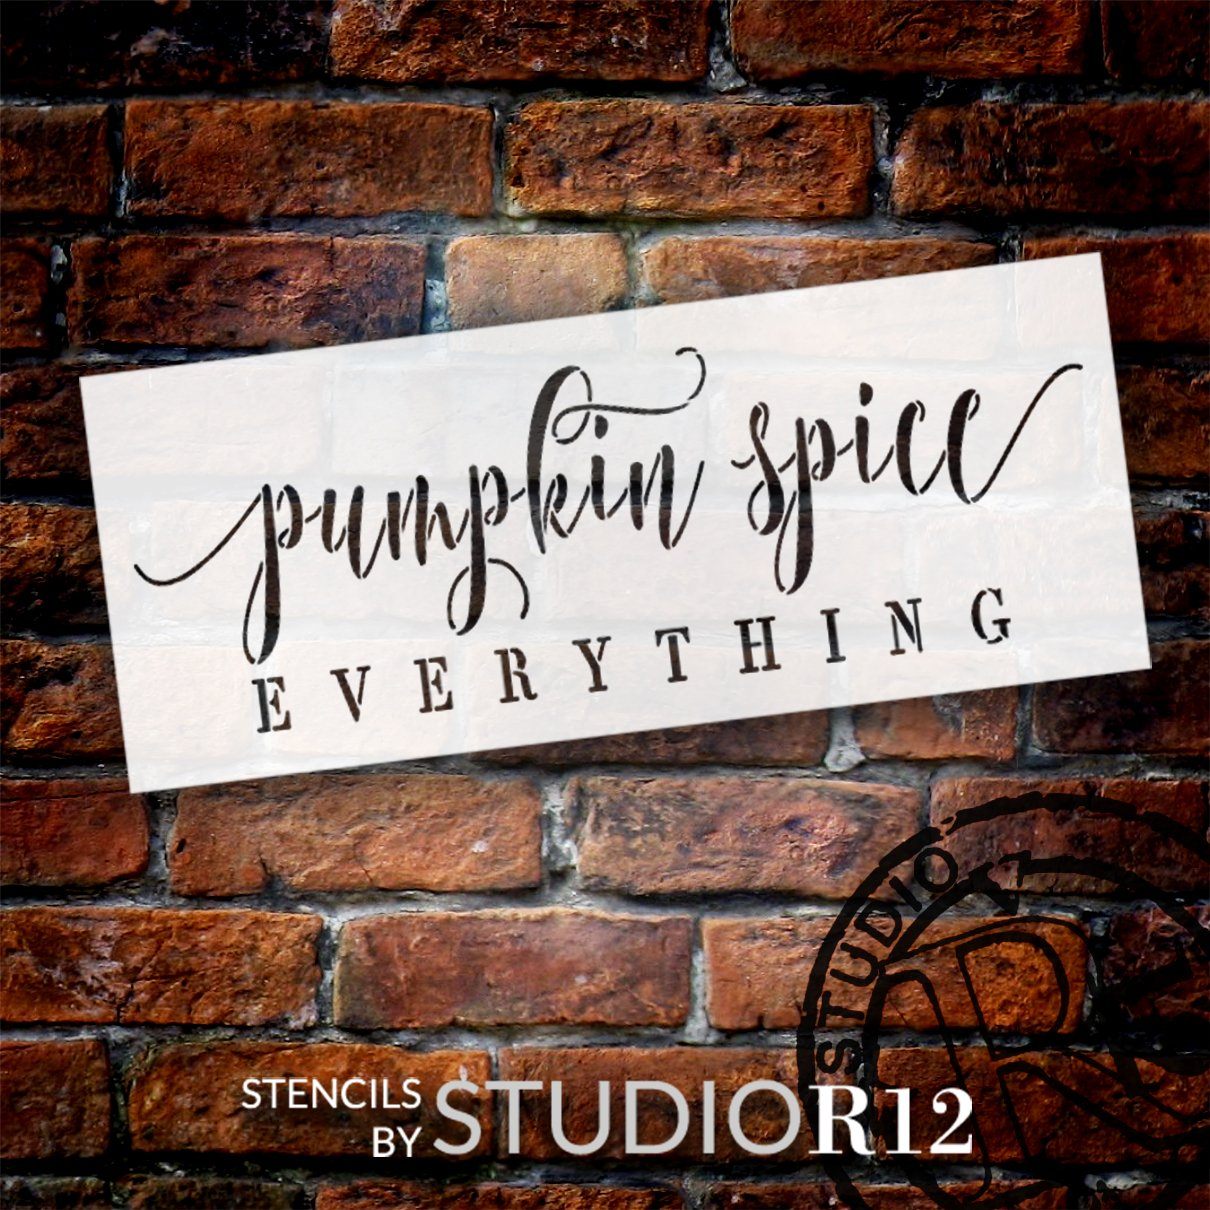 Pumpkin Spice Everything Stencil by StudioR12   DIY Fall Autumn Seasonal Home Decor   Craft & Paint Wood Sign   Reusable Mylar Template   Select Size